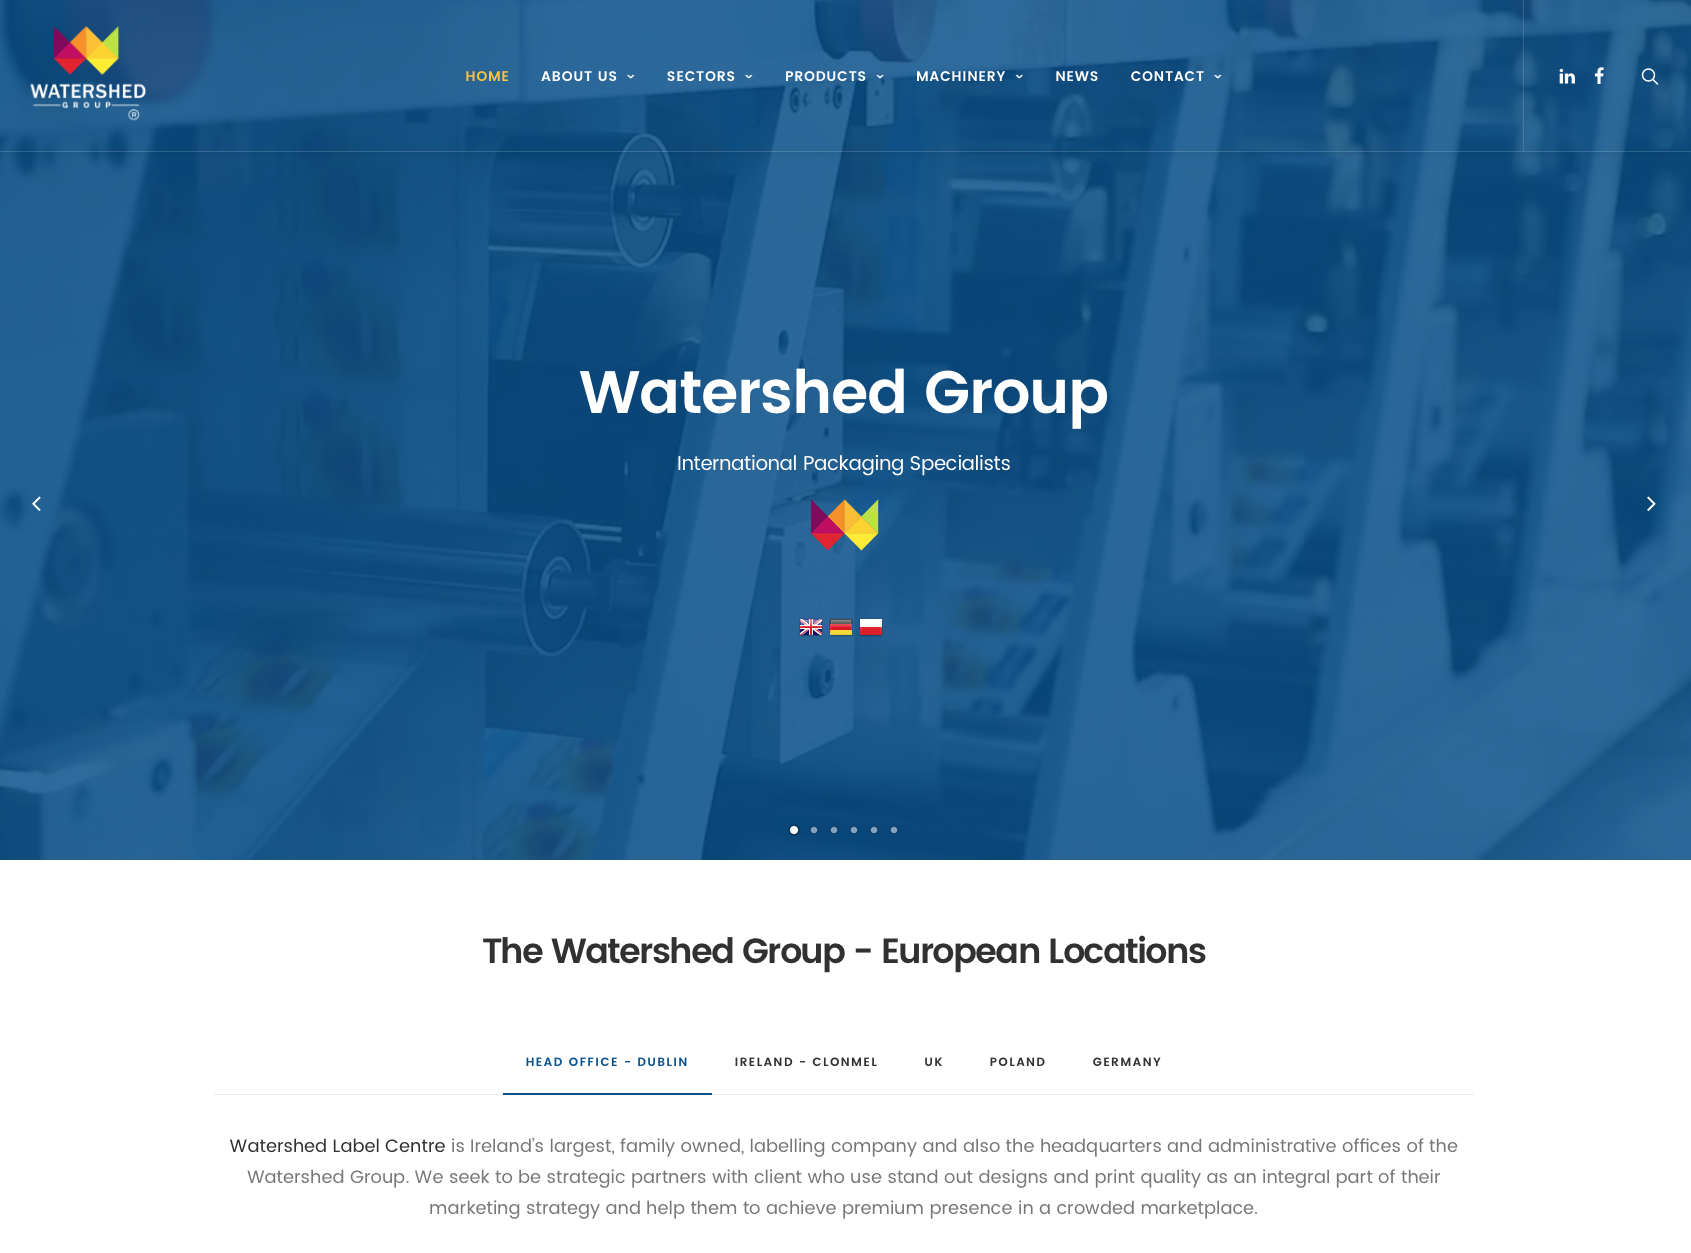 Watershed Group New Website